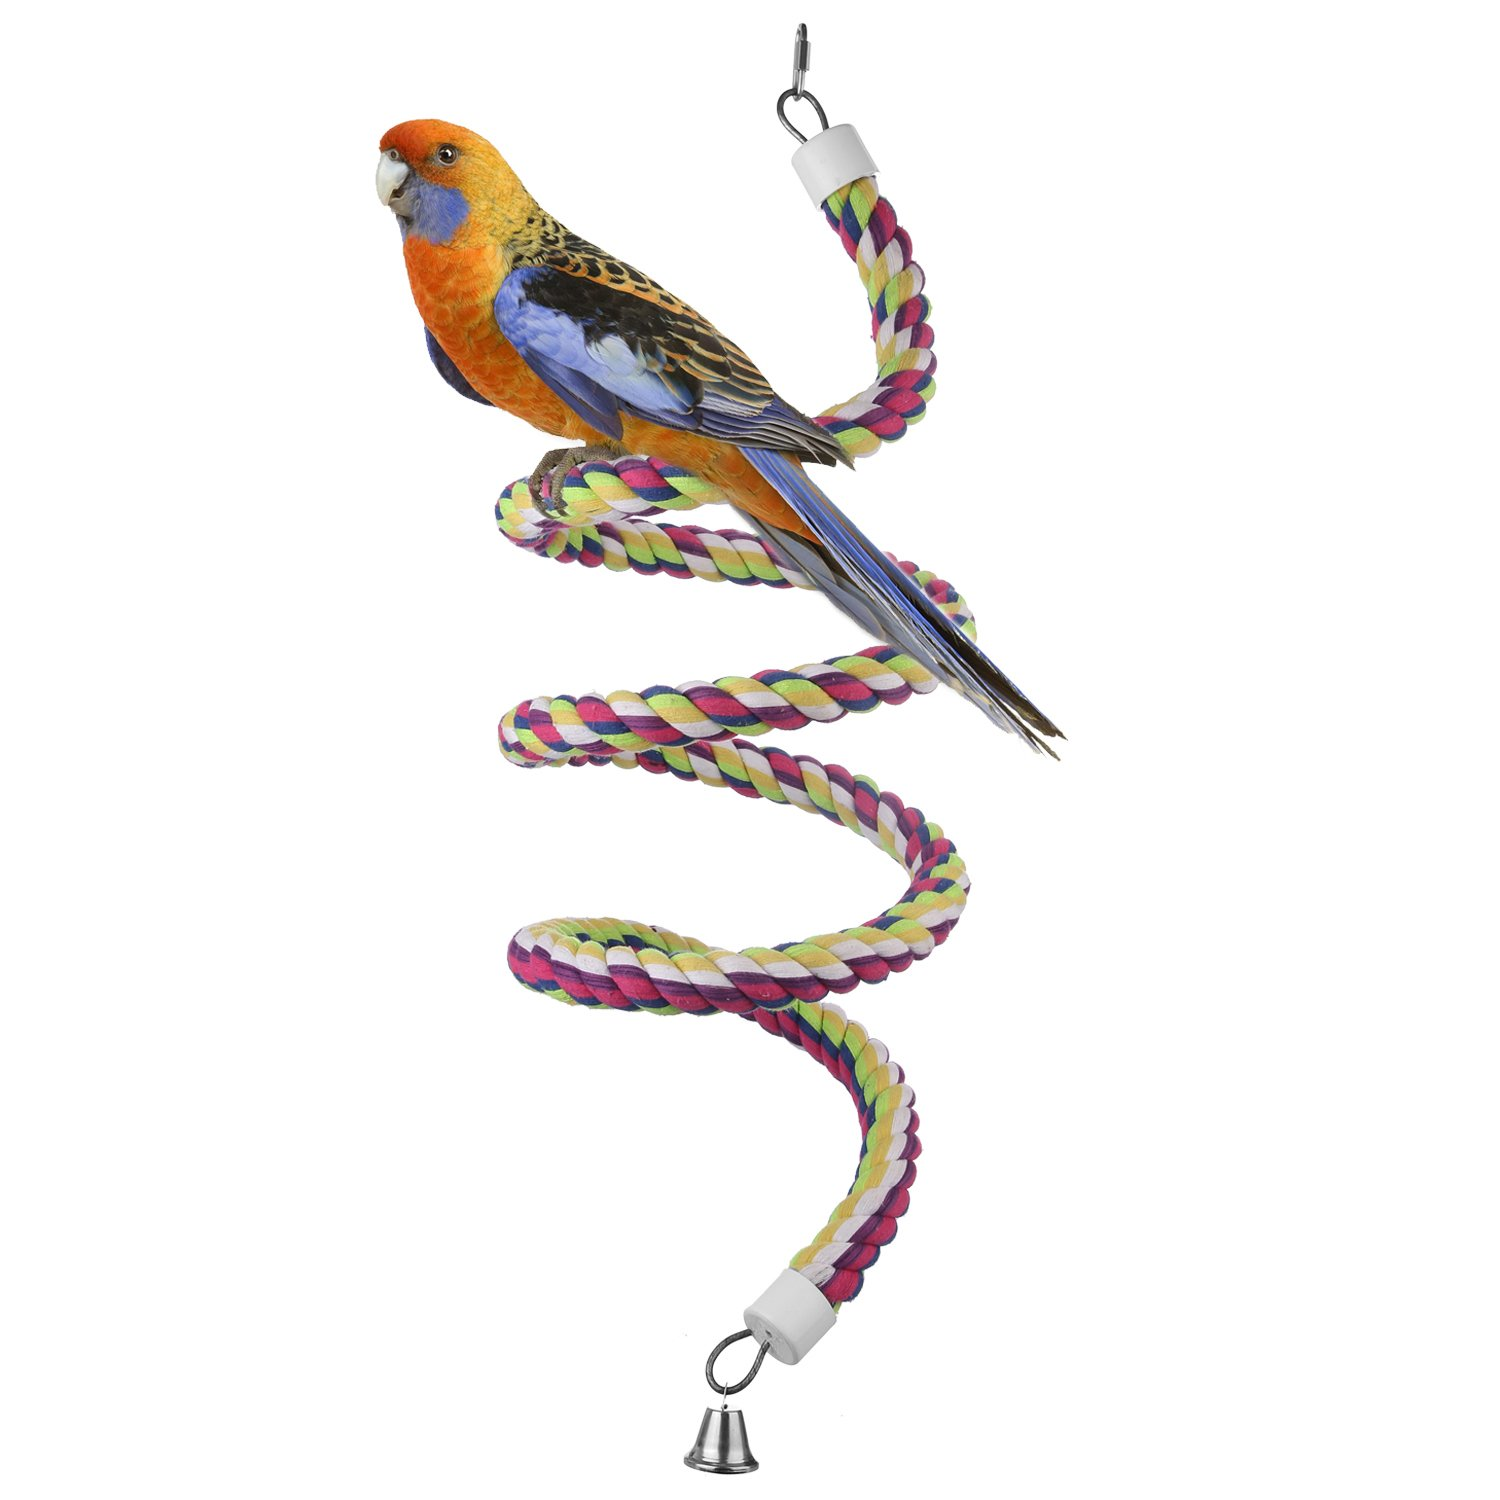 Etrech Bird Toy, Spiral Rope Bungee Perch, Pure Natural Colorful Parrot Swing Toys with Bell (Large) - 98.4Inch